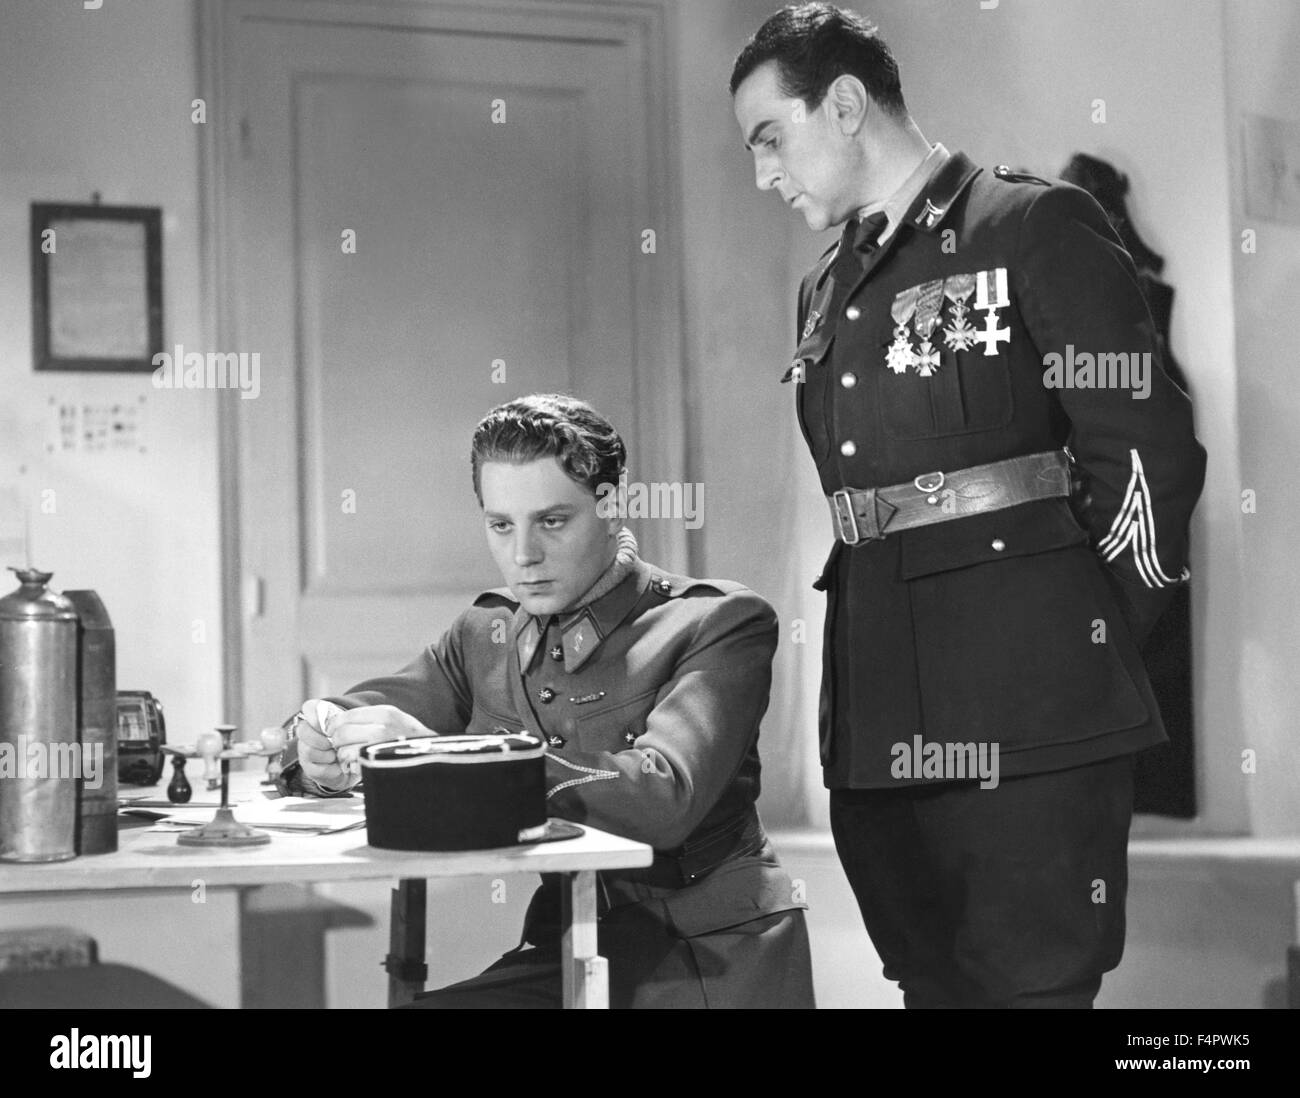 Jean-Pierre Aumont and Jean Murat / Flight Into Darkness / 1935 directed by Anatole Litvak [Pathe] - Stock Image